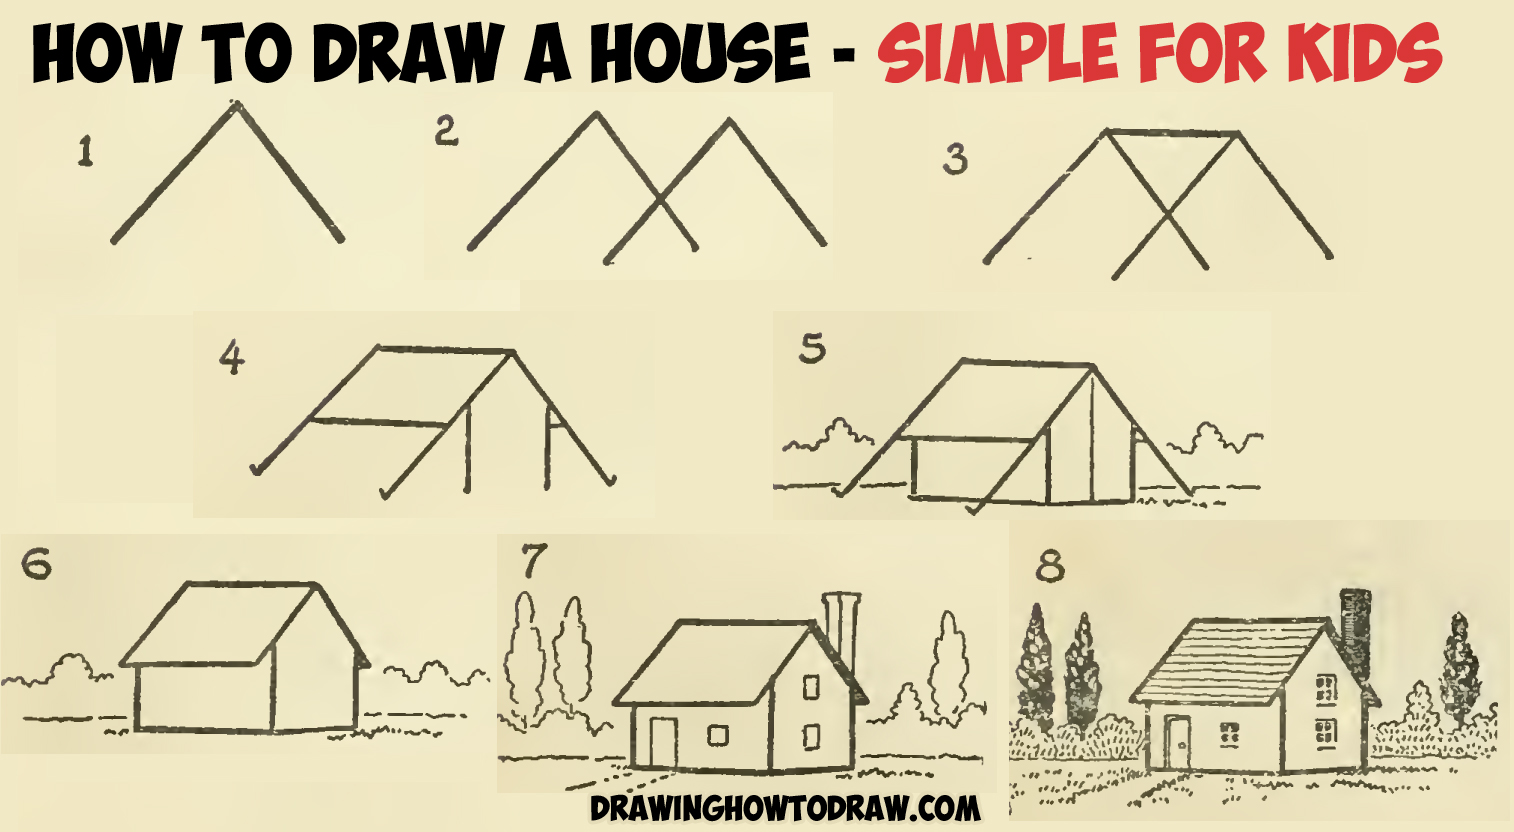 How to draw a simple house with geometric shapes easy step by step drawing tutorial for kids and Draw your house